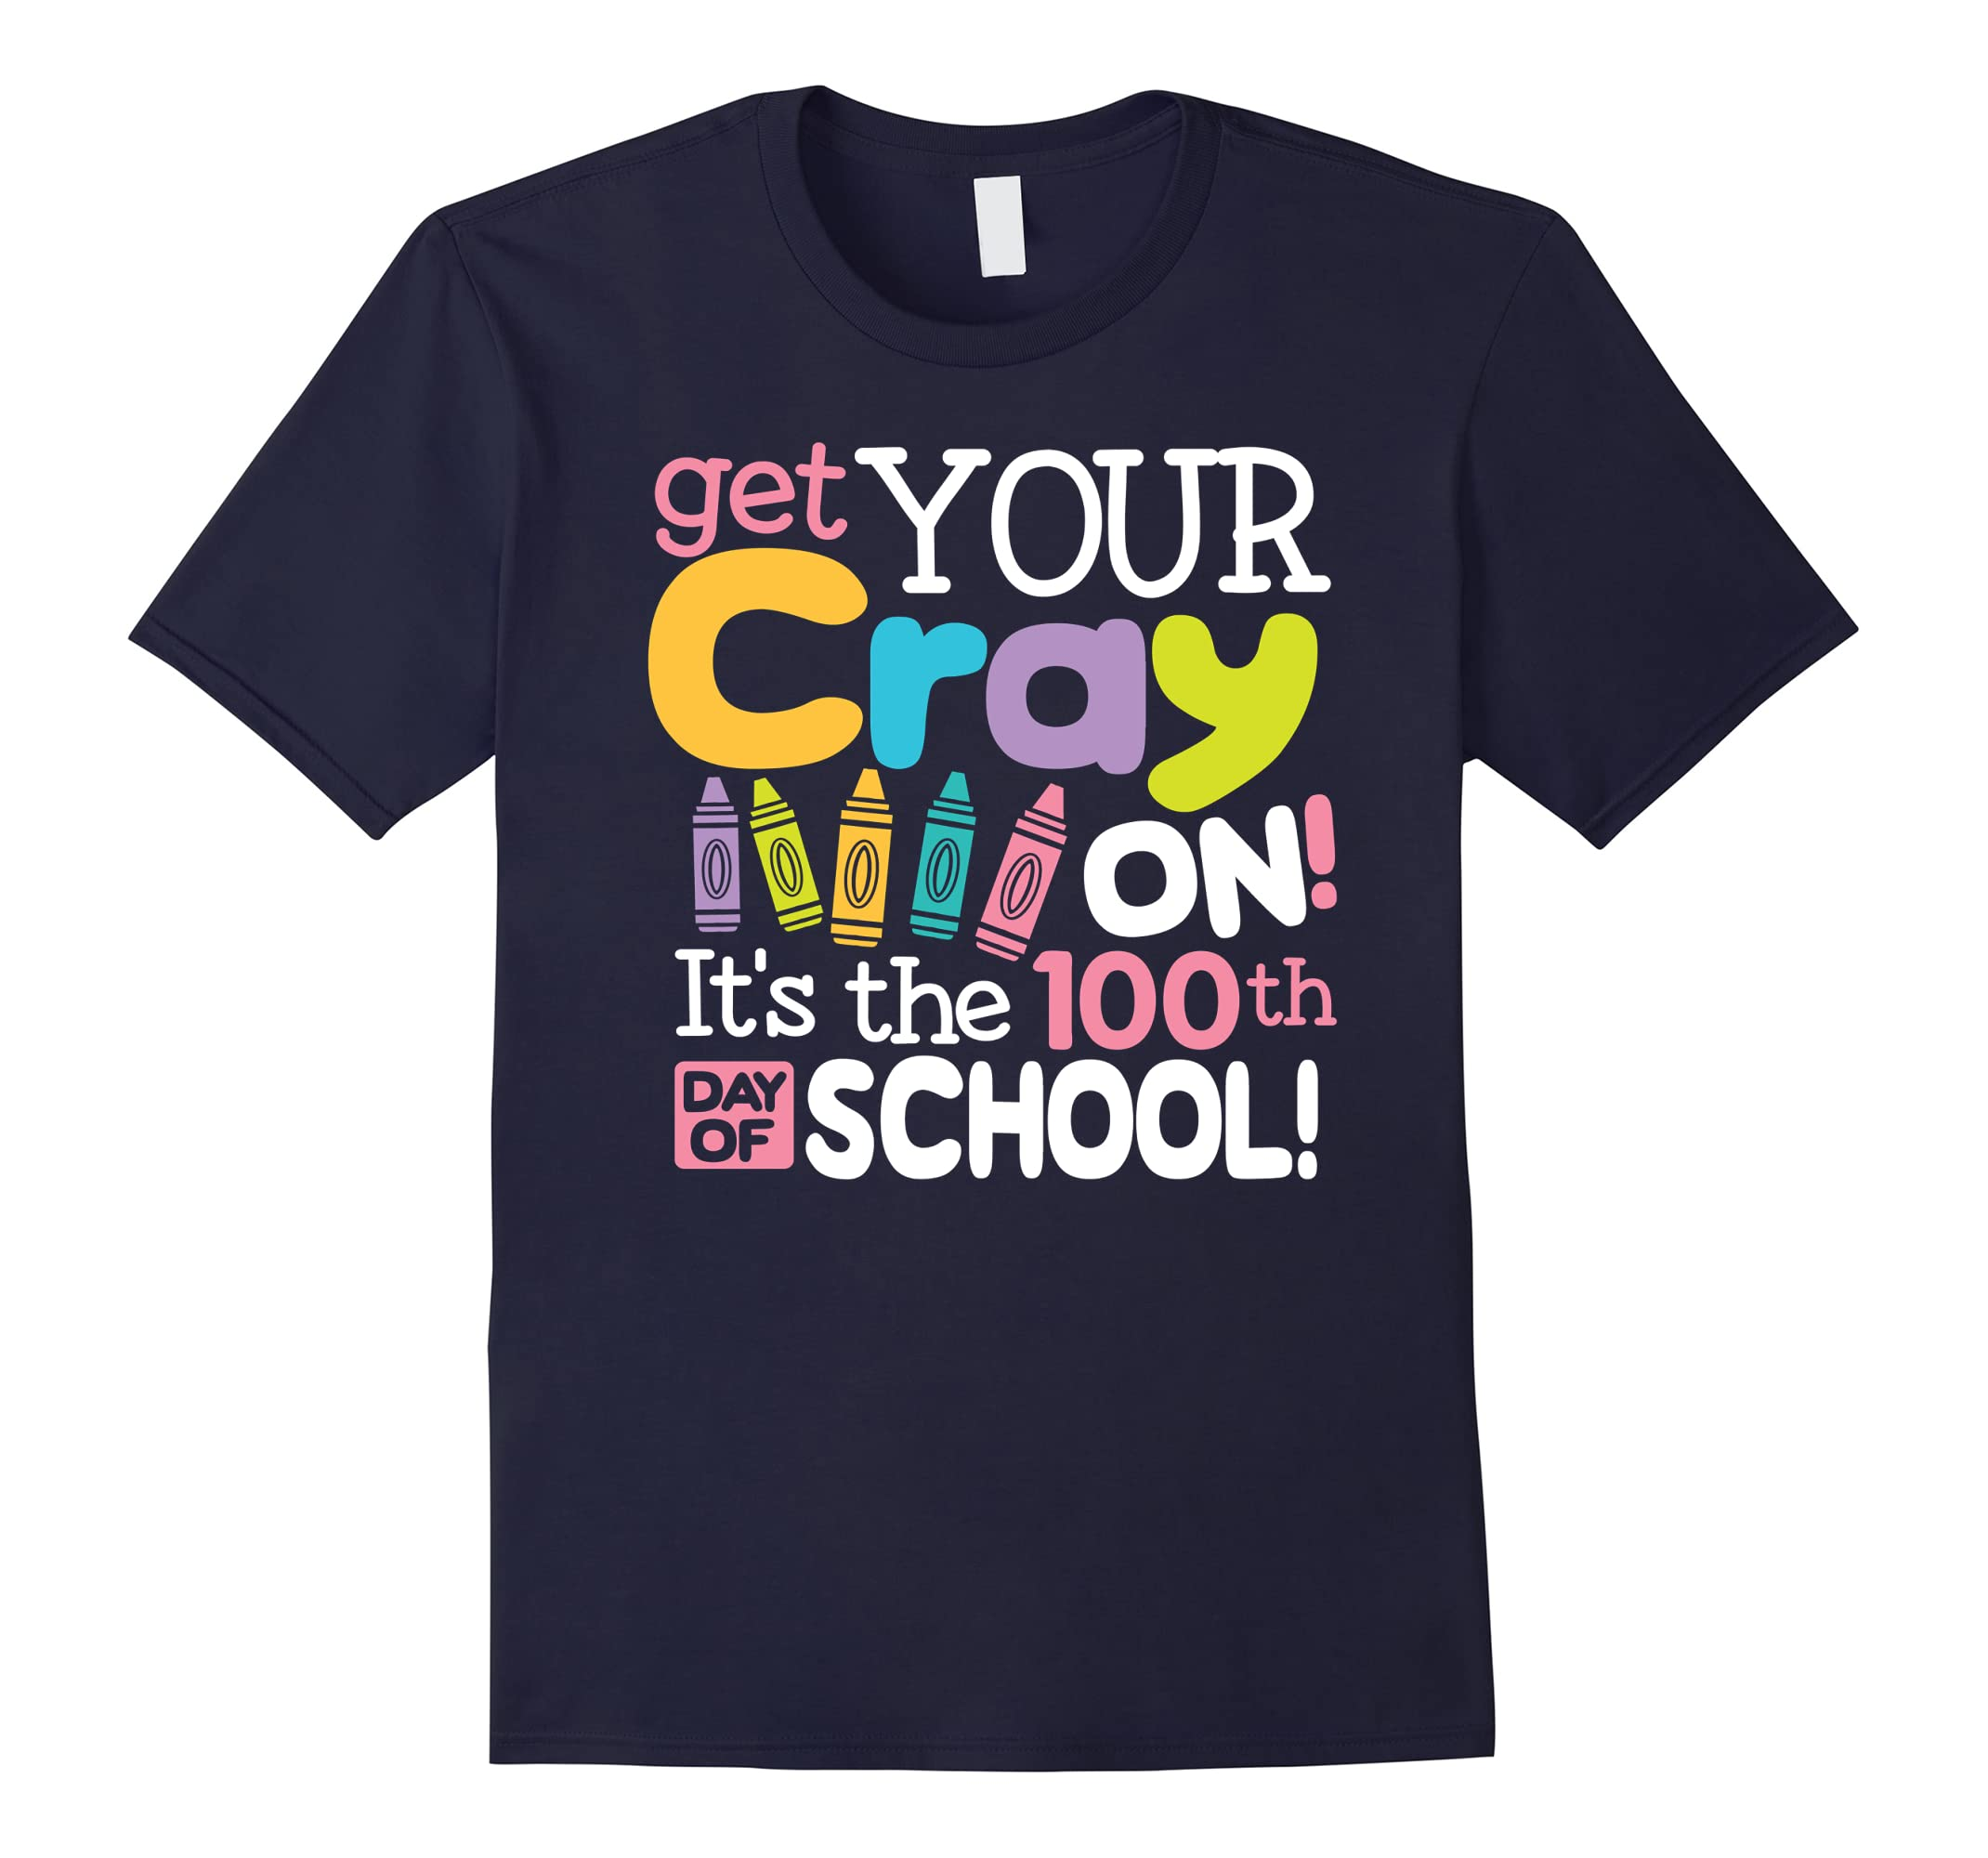 100th Day of School Tshirt Get Your Cray On Teacher Student-ah my shirt one gift